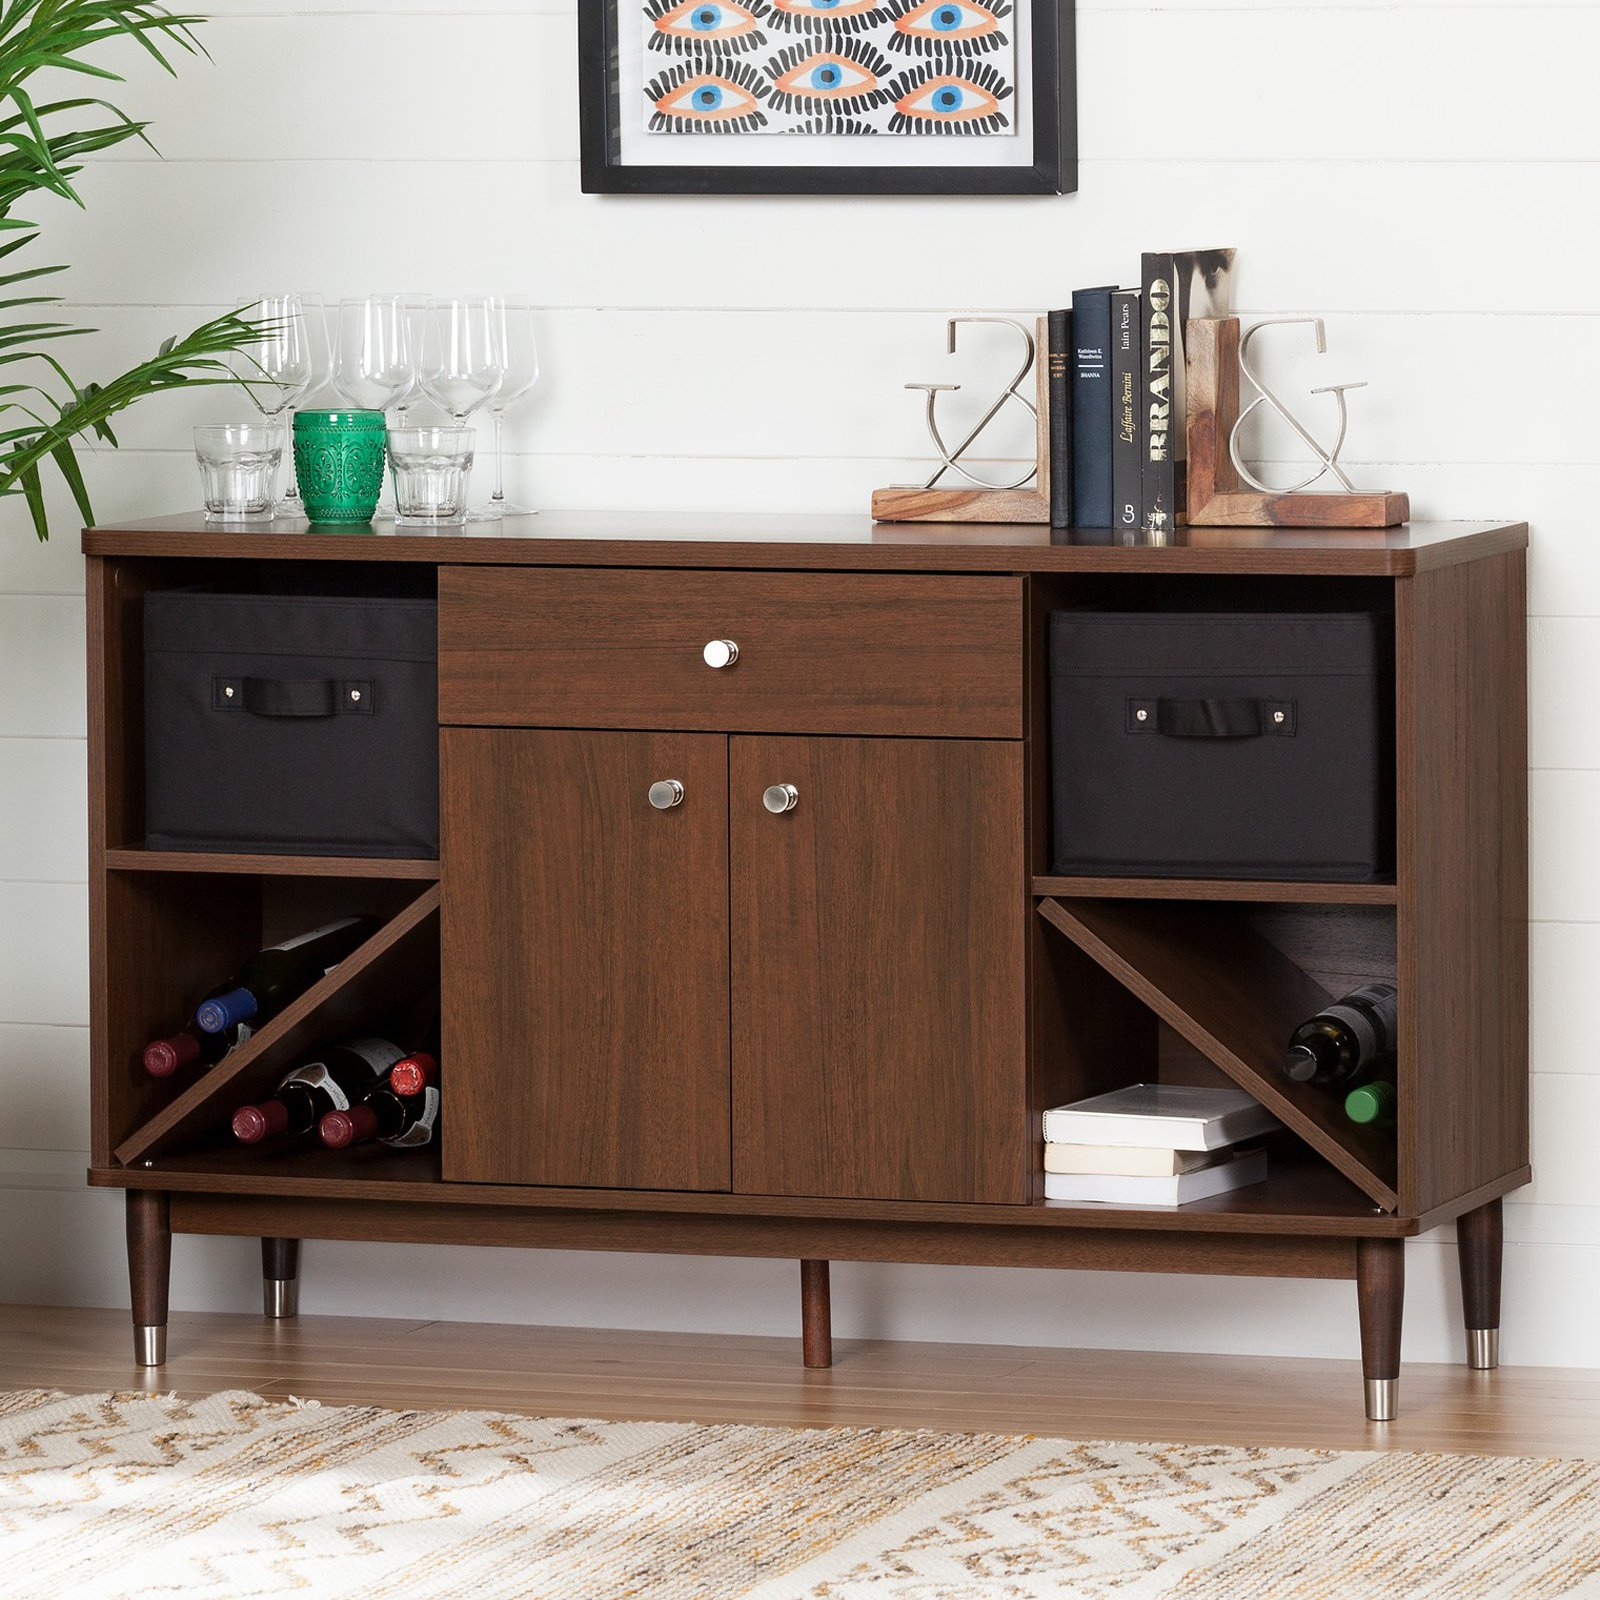 South Shore Olly Mid-Century Modern Sideboard Storage Cabinet, Brown Walnut with Mid-Century Brown and Grey Sideboards (Image 26 of 30)